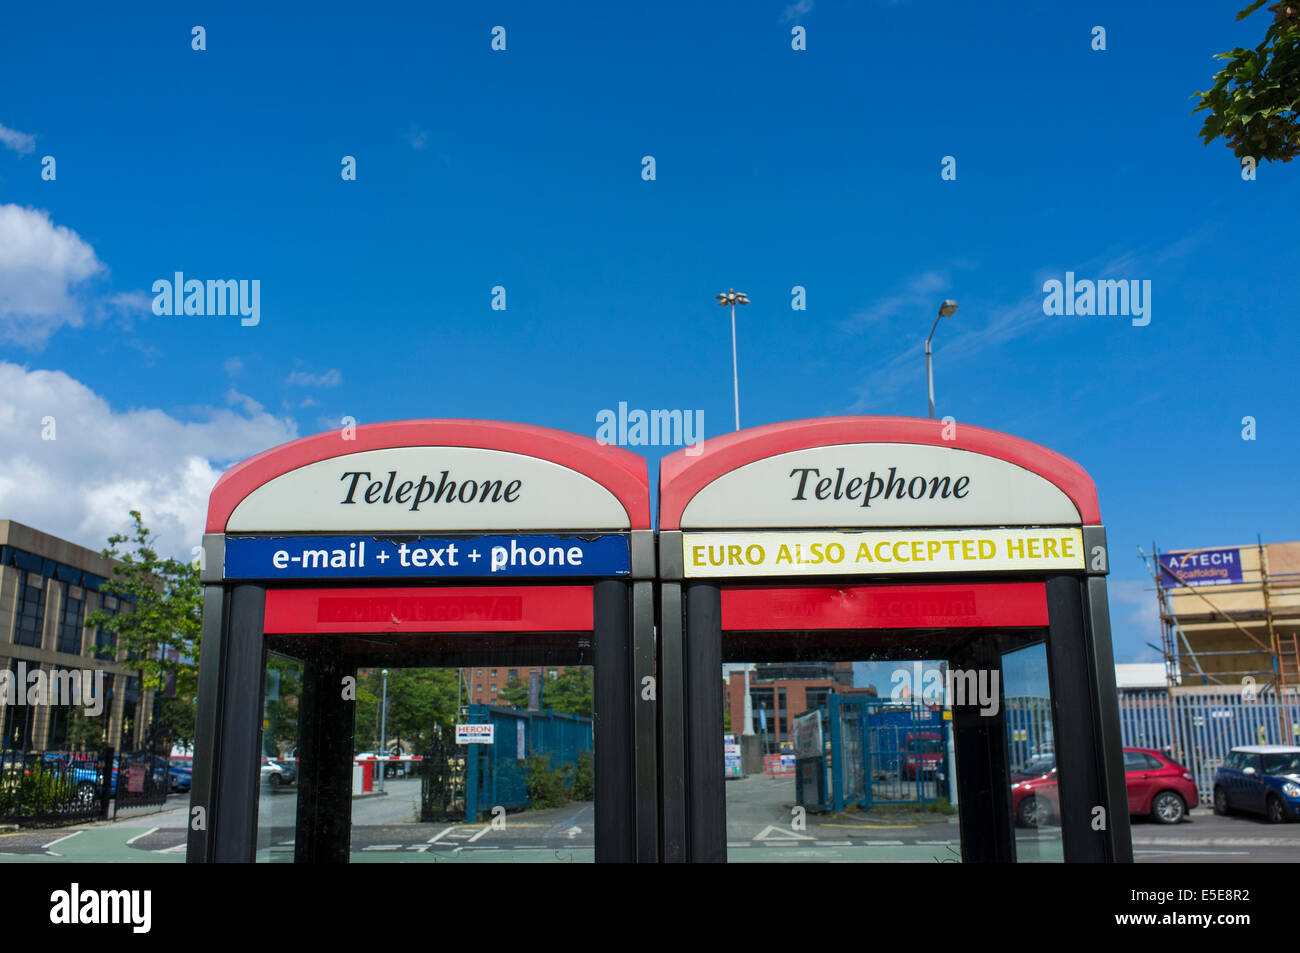 BT telephone boxes against a blue sky - Stock Image